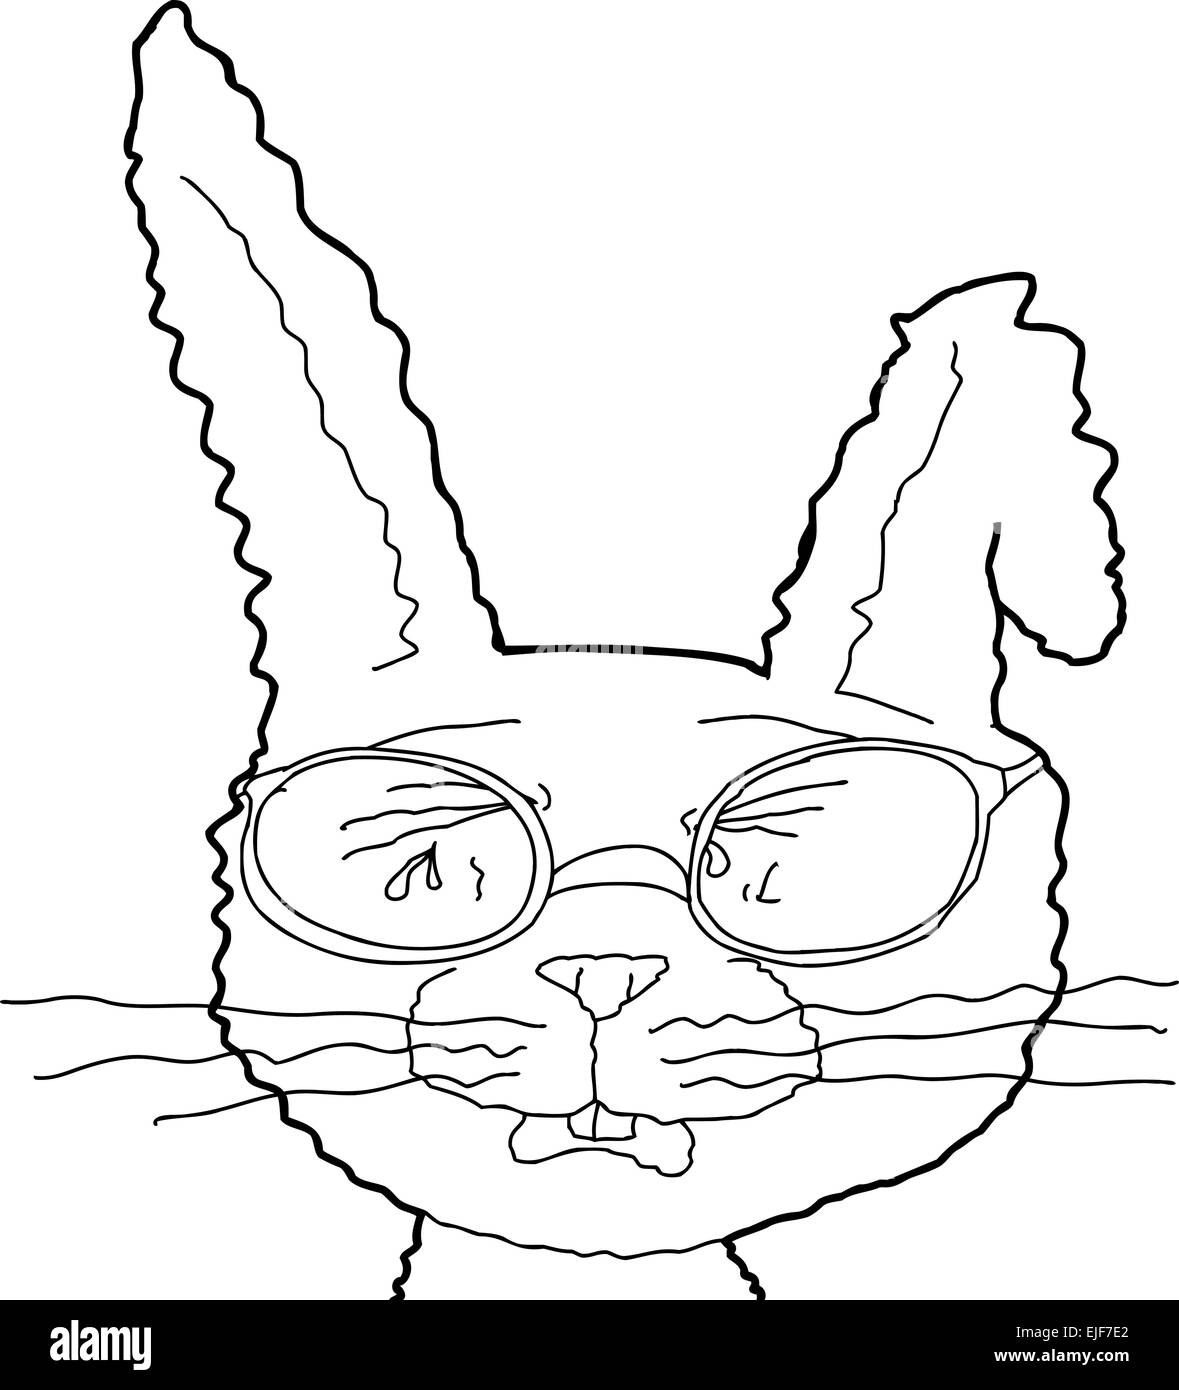 Depressed cartoon bunny with eyeglasses and bent ear - Stock Image